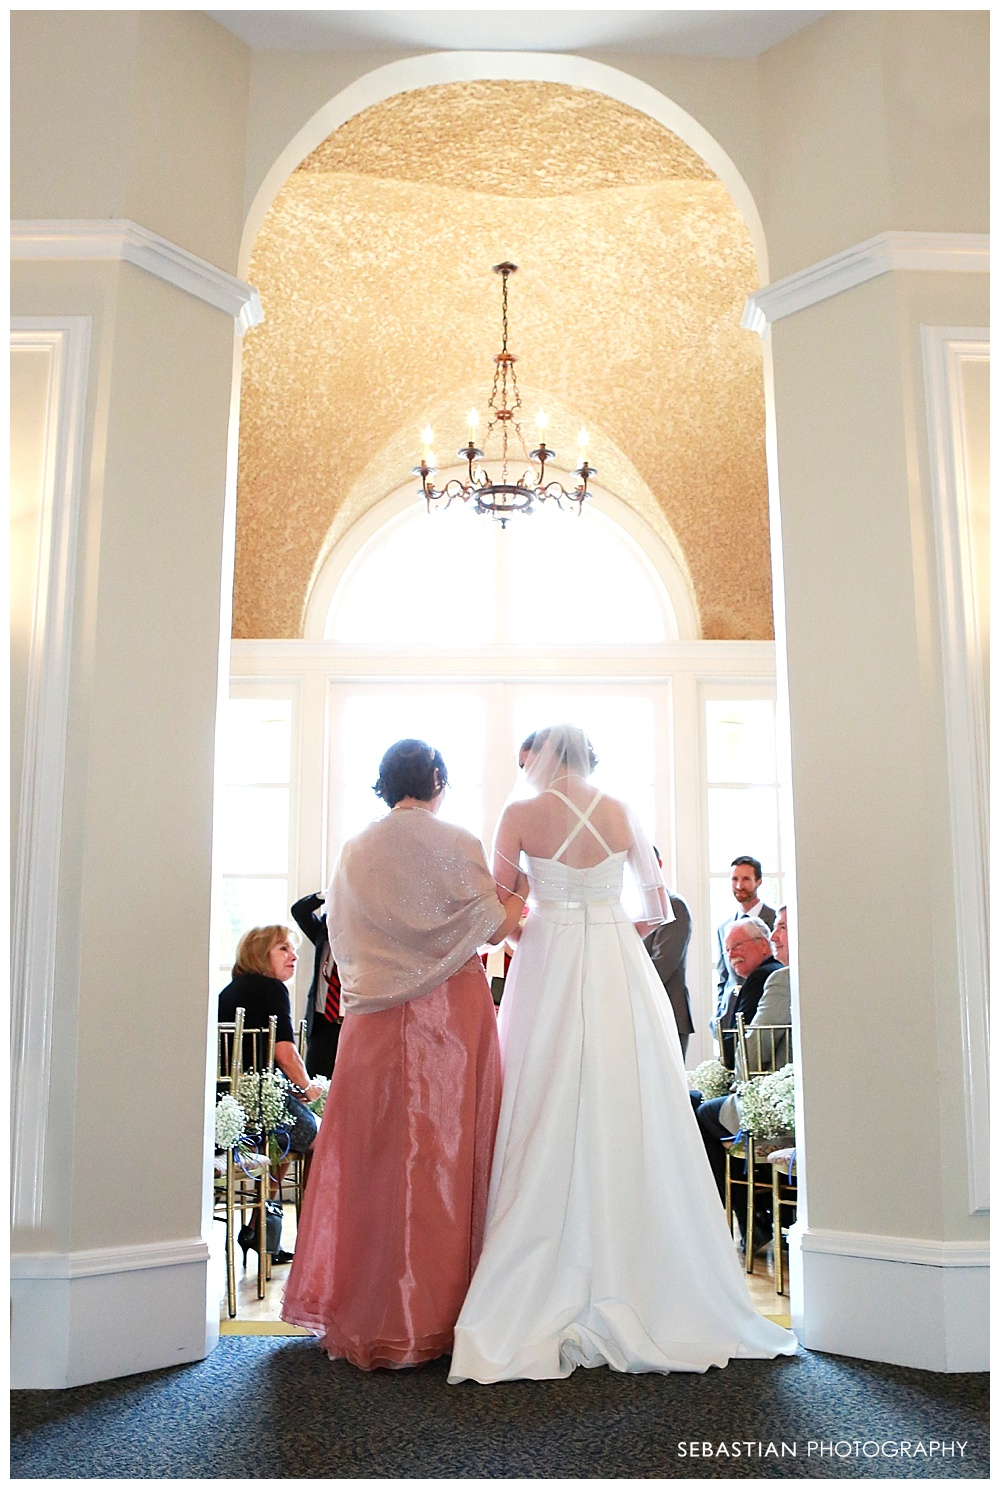 Sebastian_Photography_Wadsworth_Mansion_Middletown_CT_Wedding_Portraits_Spring27.jpg